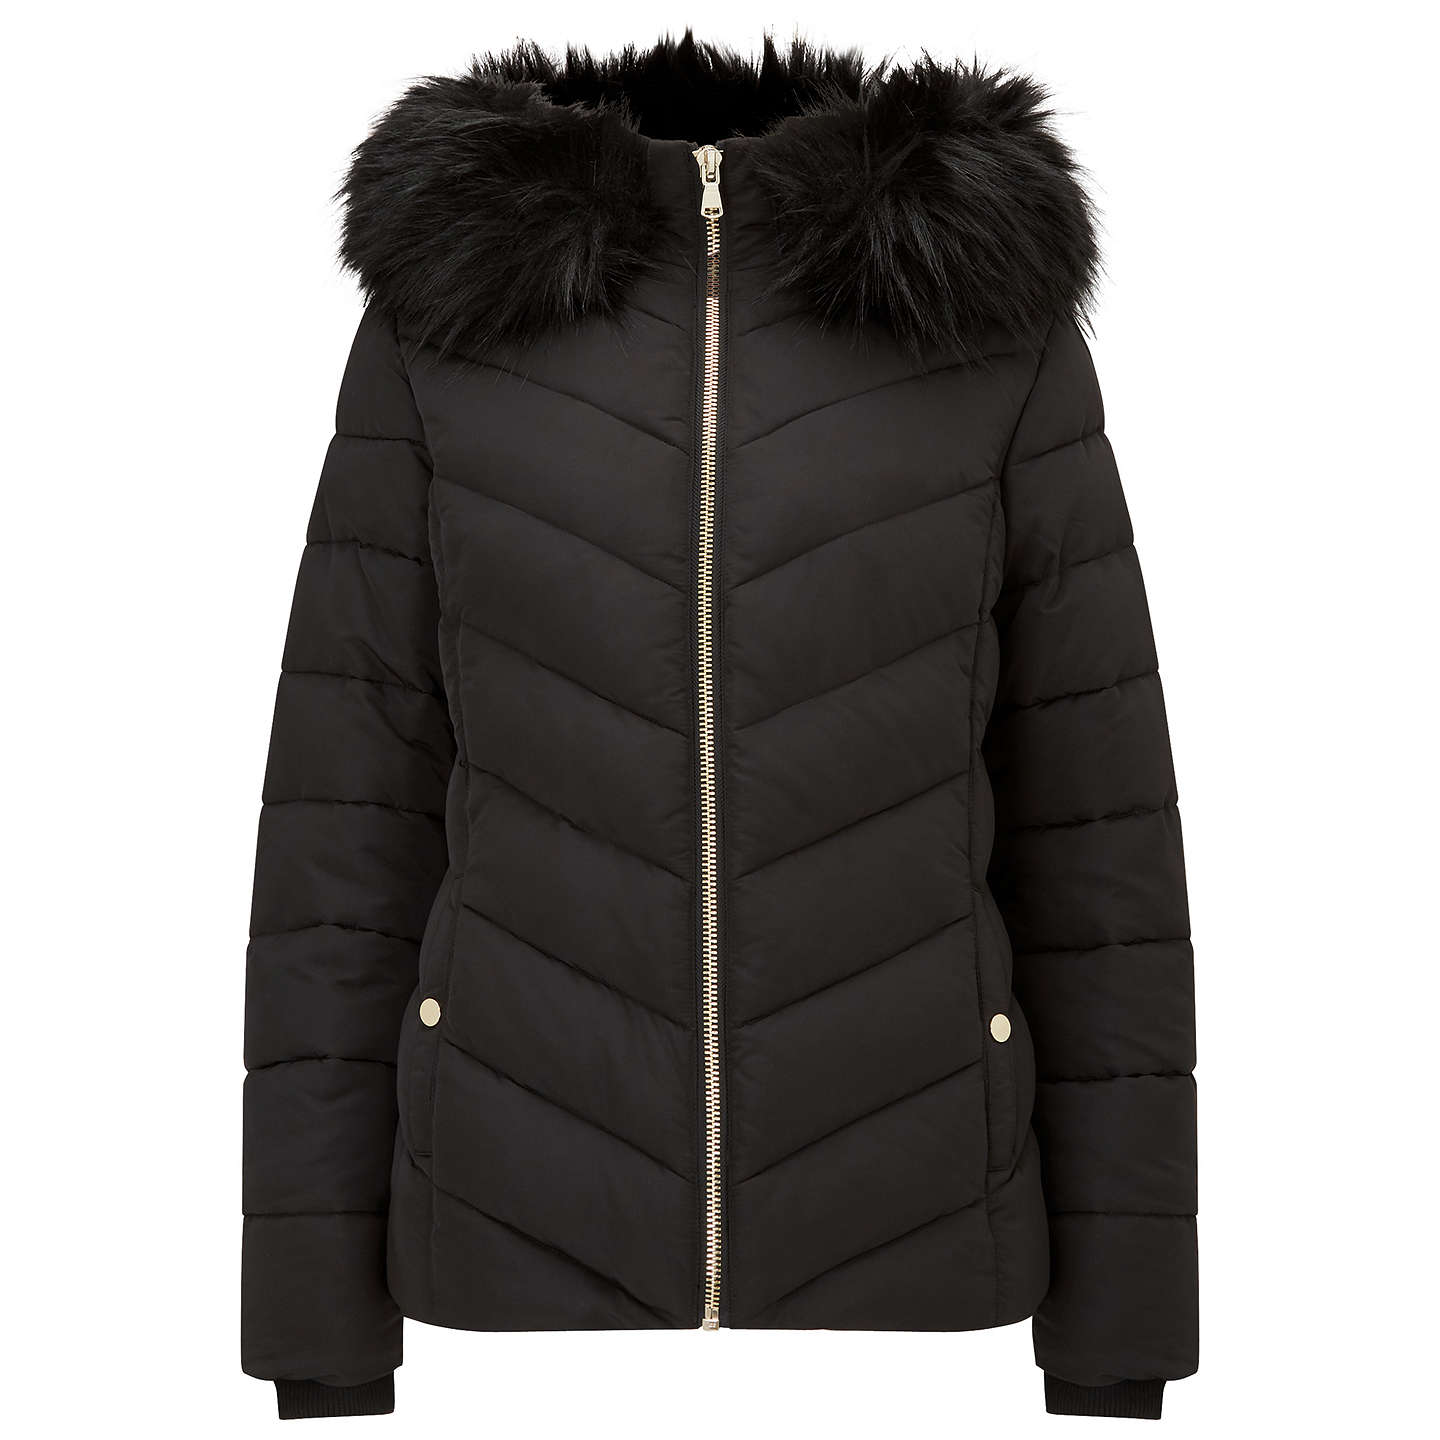 BuyMiss Selfridge Faux Fur Hood Puffer Jacket, Black, 6 Online at johnlewis.com